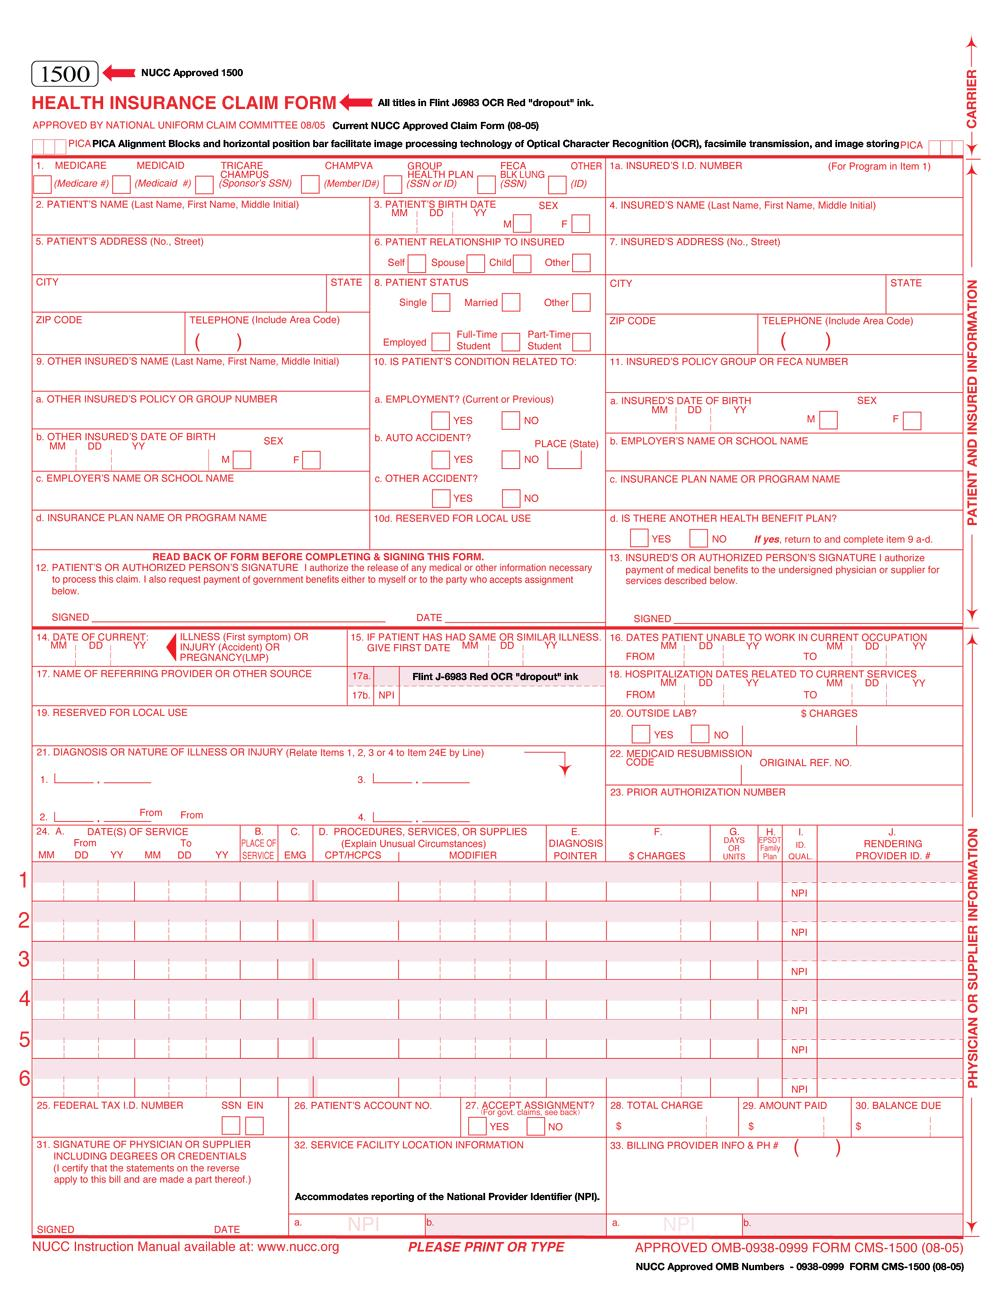 Cms 1500 Form 212 Instructions